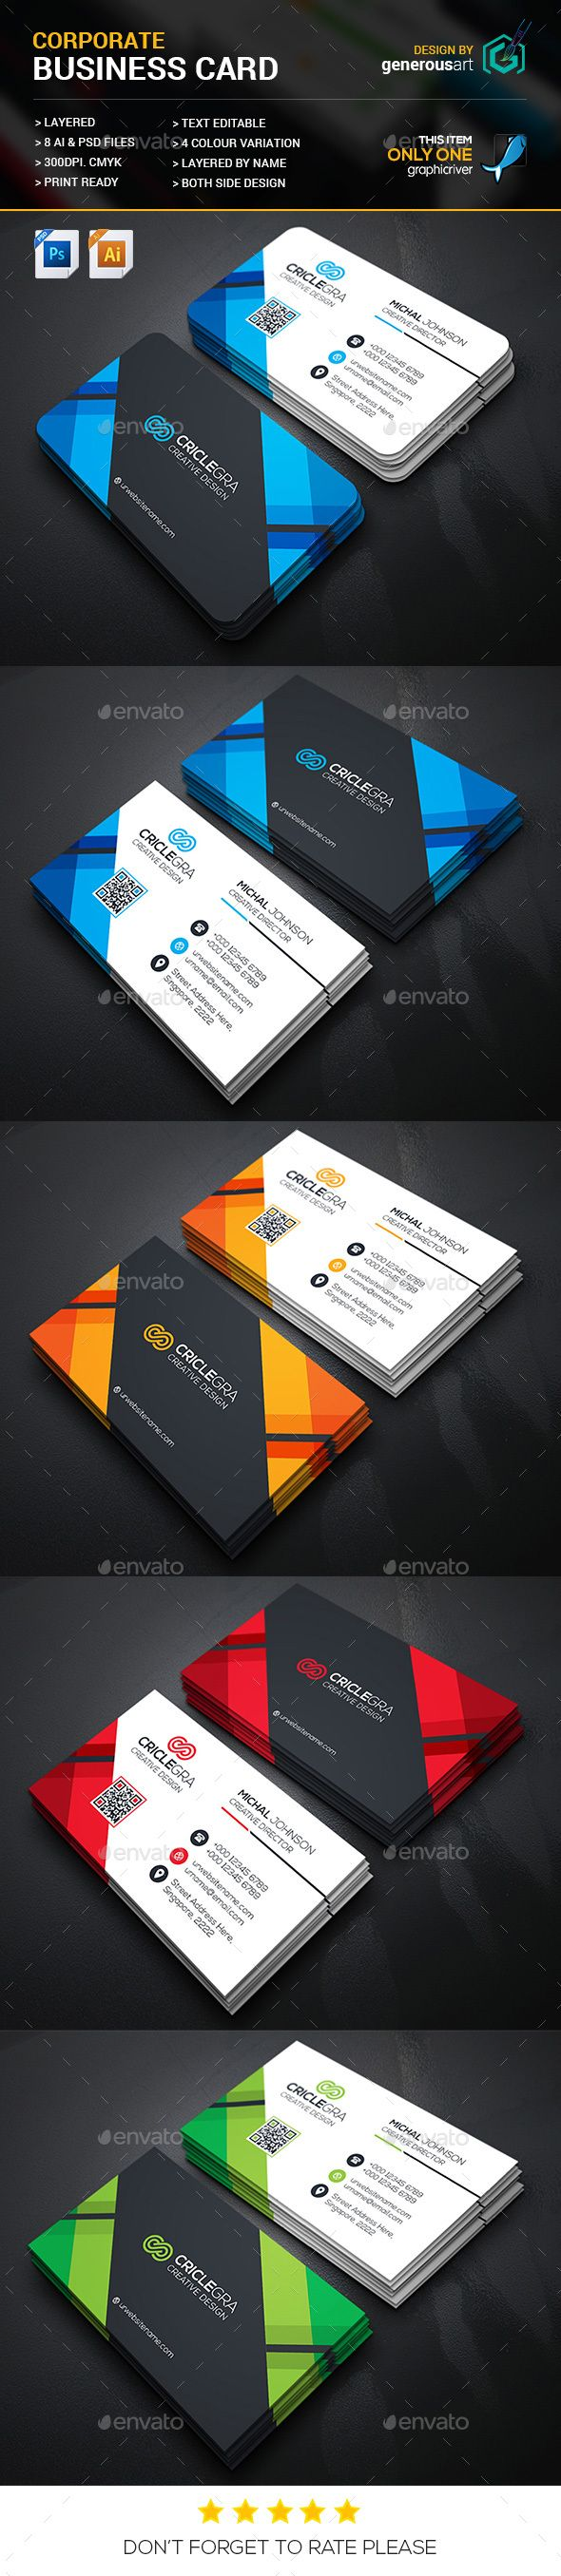 22 best Business Card Template images on Pinterest | Business card ...